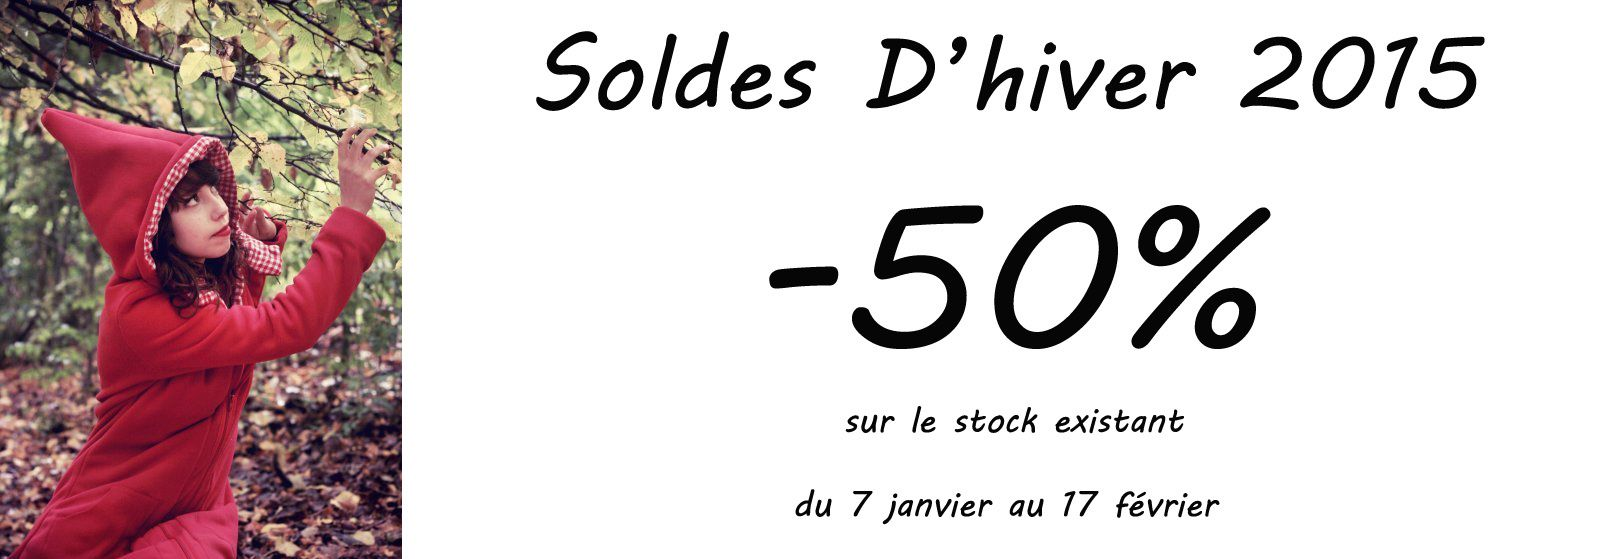 soldes d 39 hiver 2015 zawann le blog. Black Bedroom Furniture Sets. Home Design Ideas